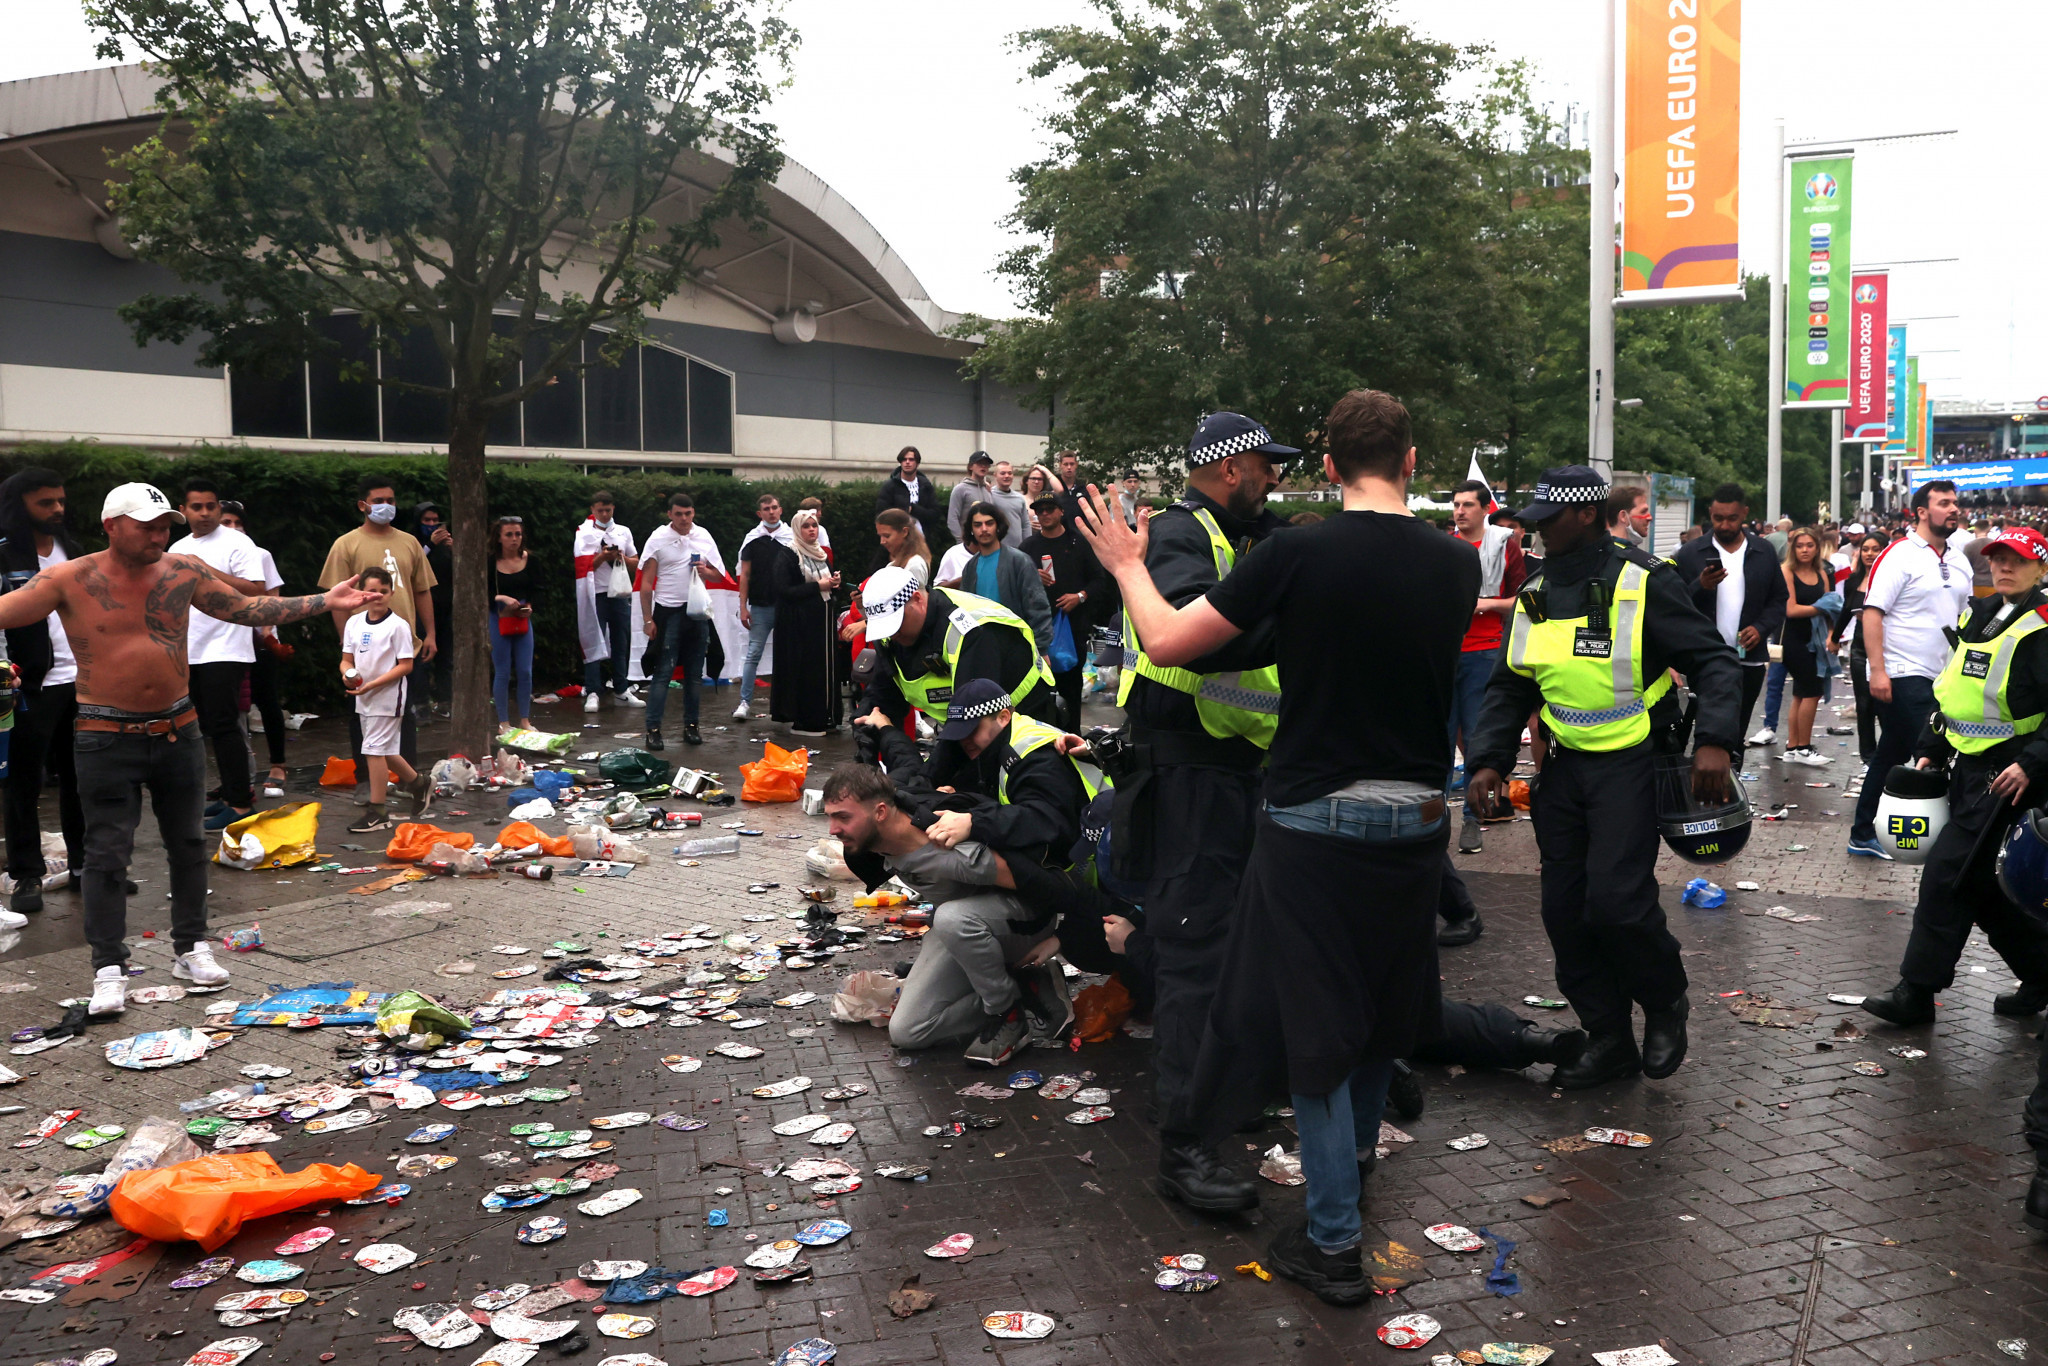 England ordered to play next UEFA match behind closed doors following Euro 2020 final crowd trouble